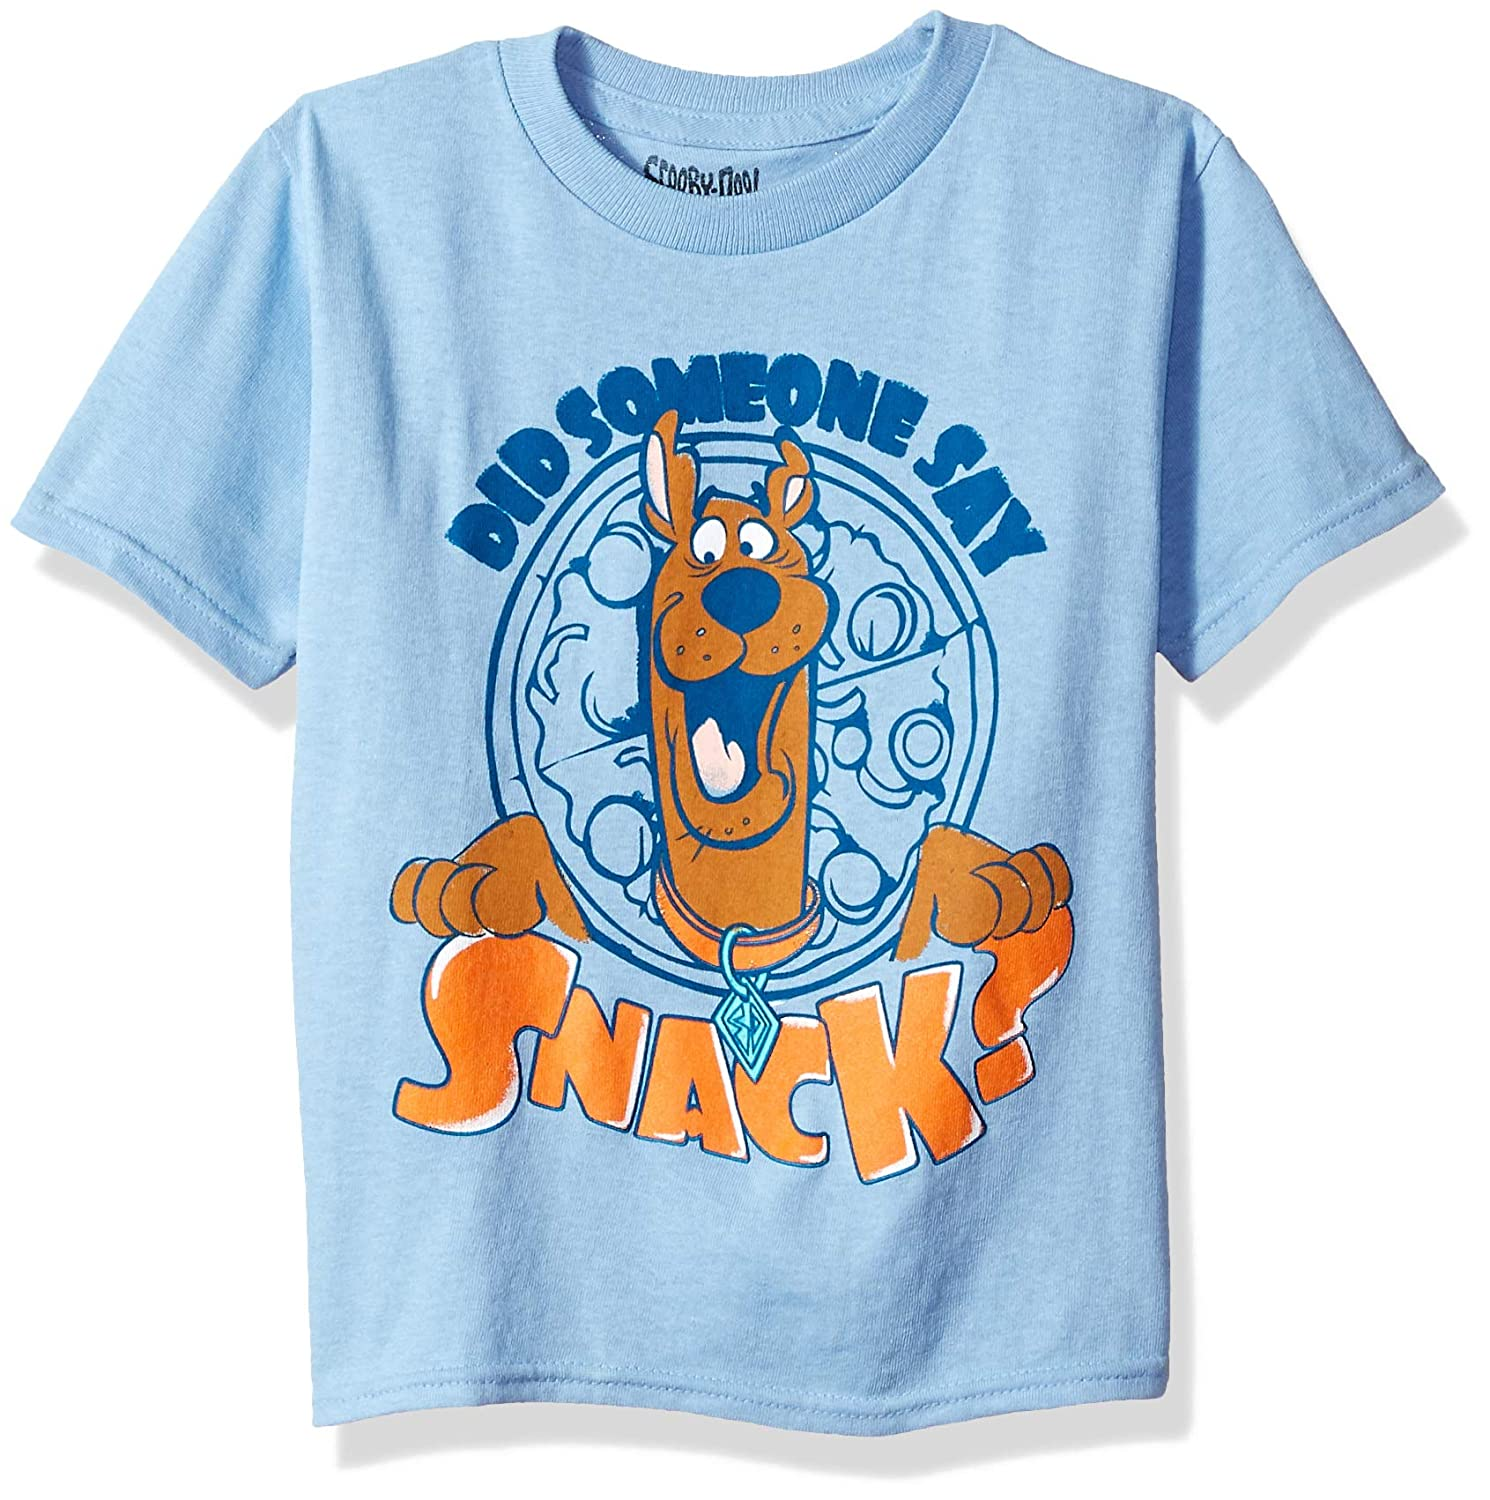 Short Sleeve Tshirt T-Shirt Scooby Doo Boys Did Someone Say Snack